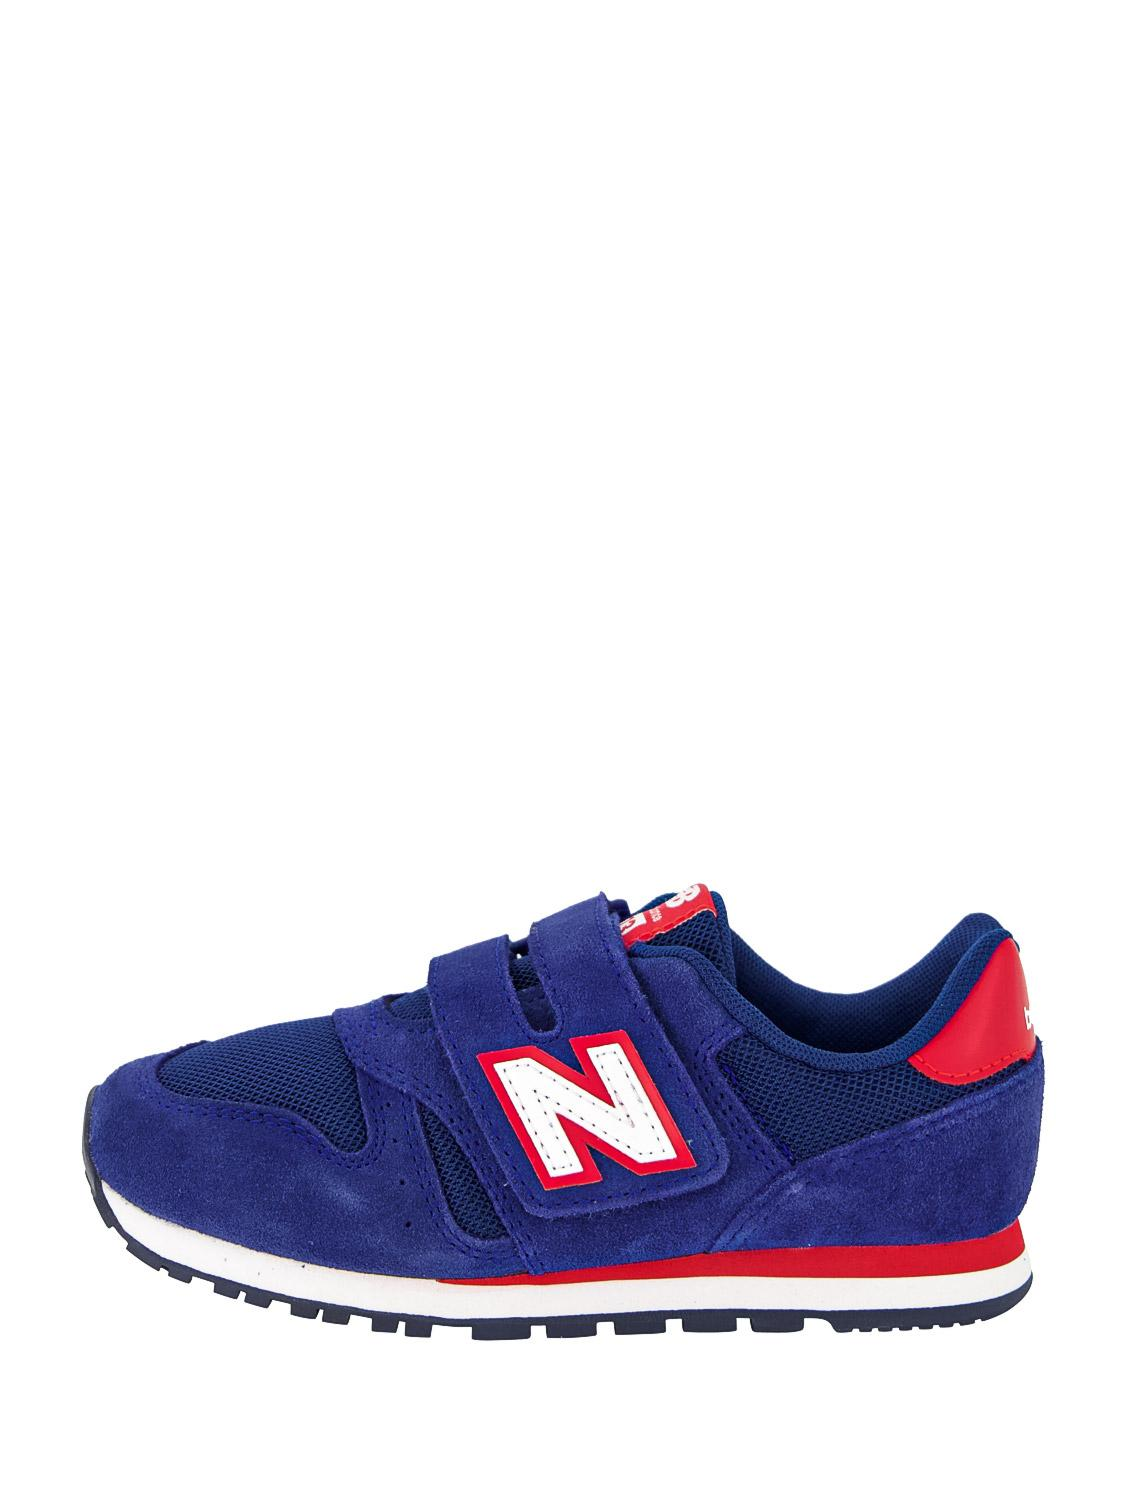 NEW BALANCE sneakers 373 blue for boys